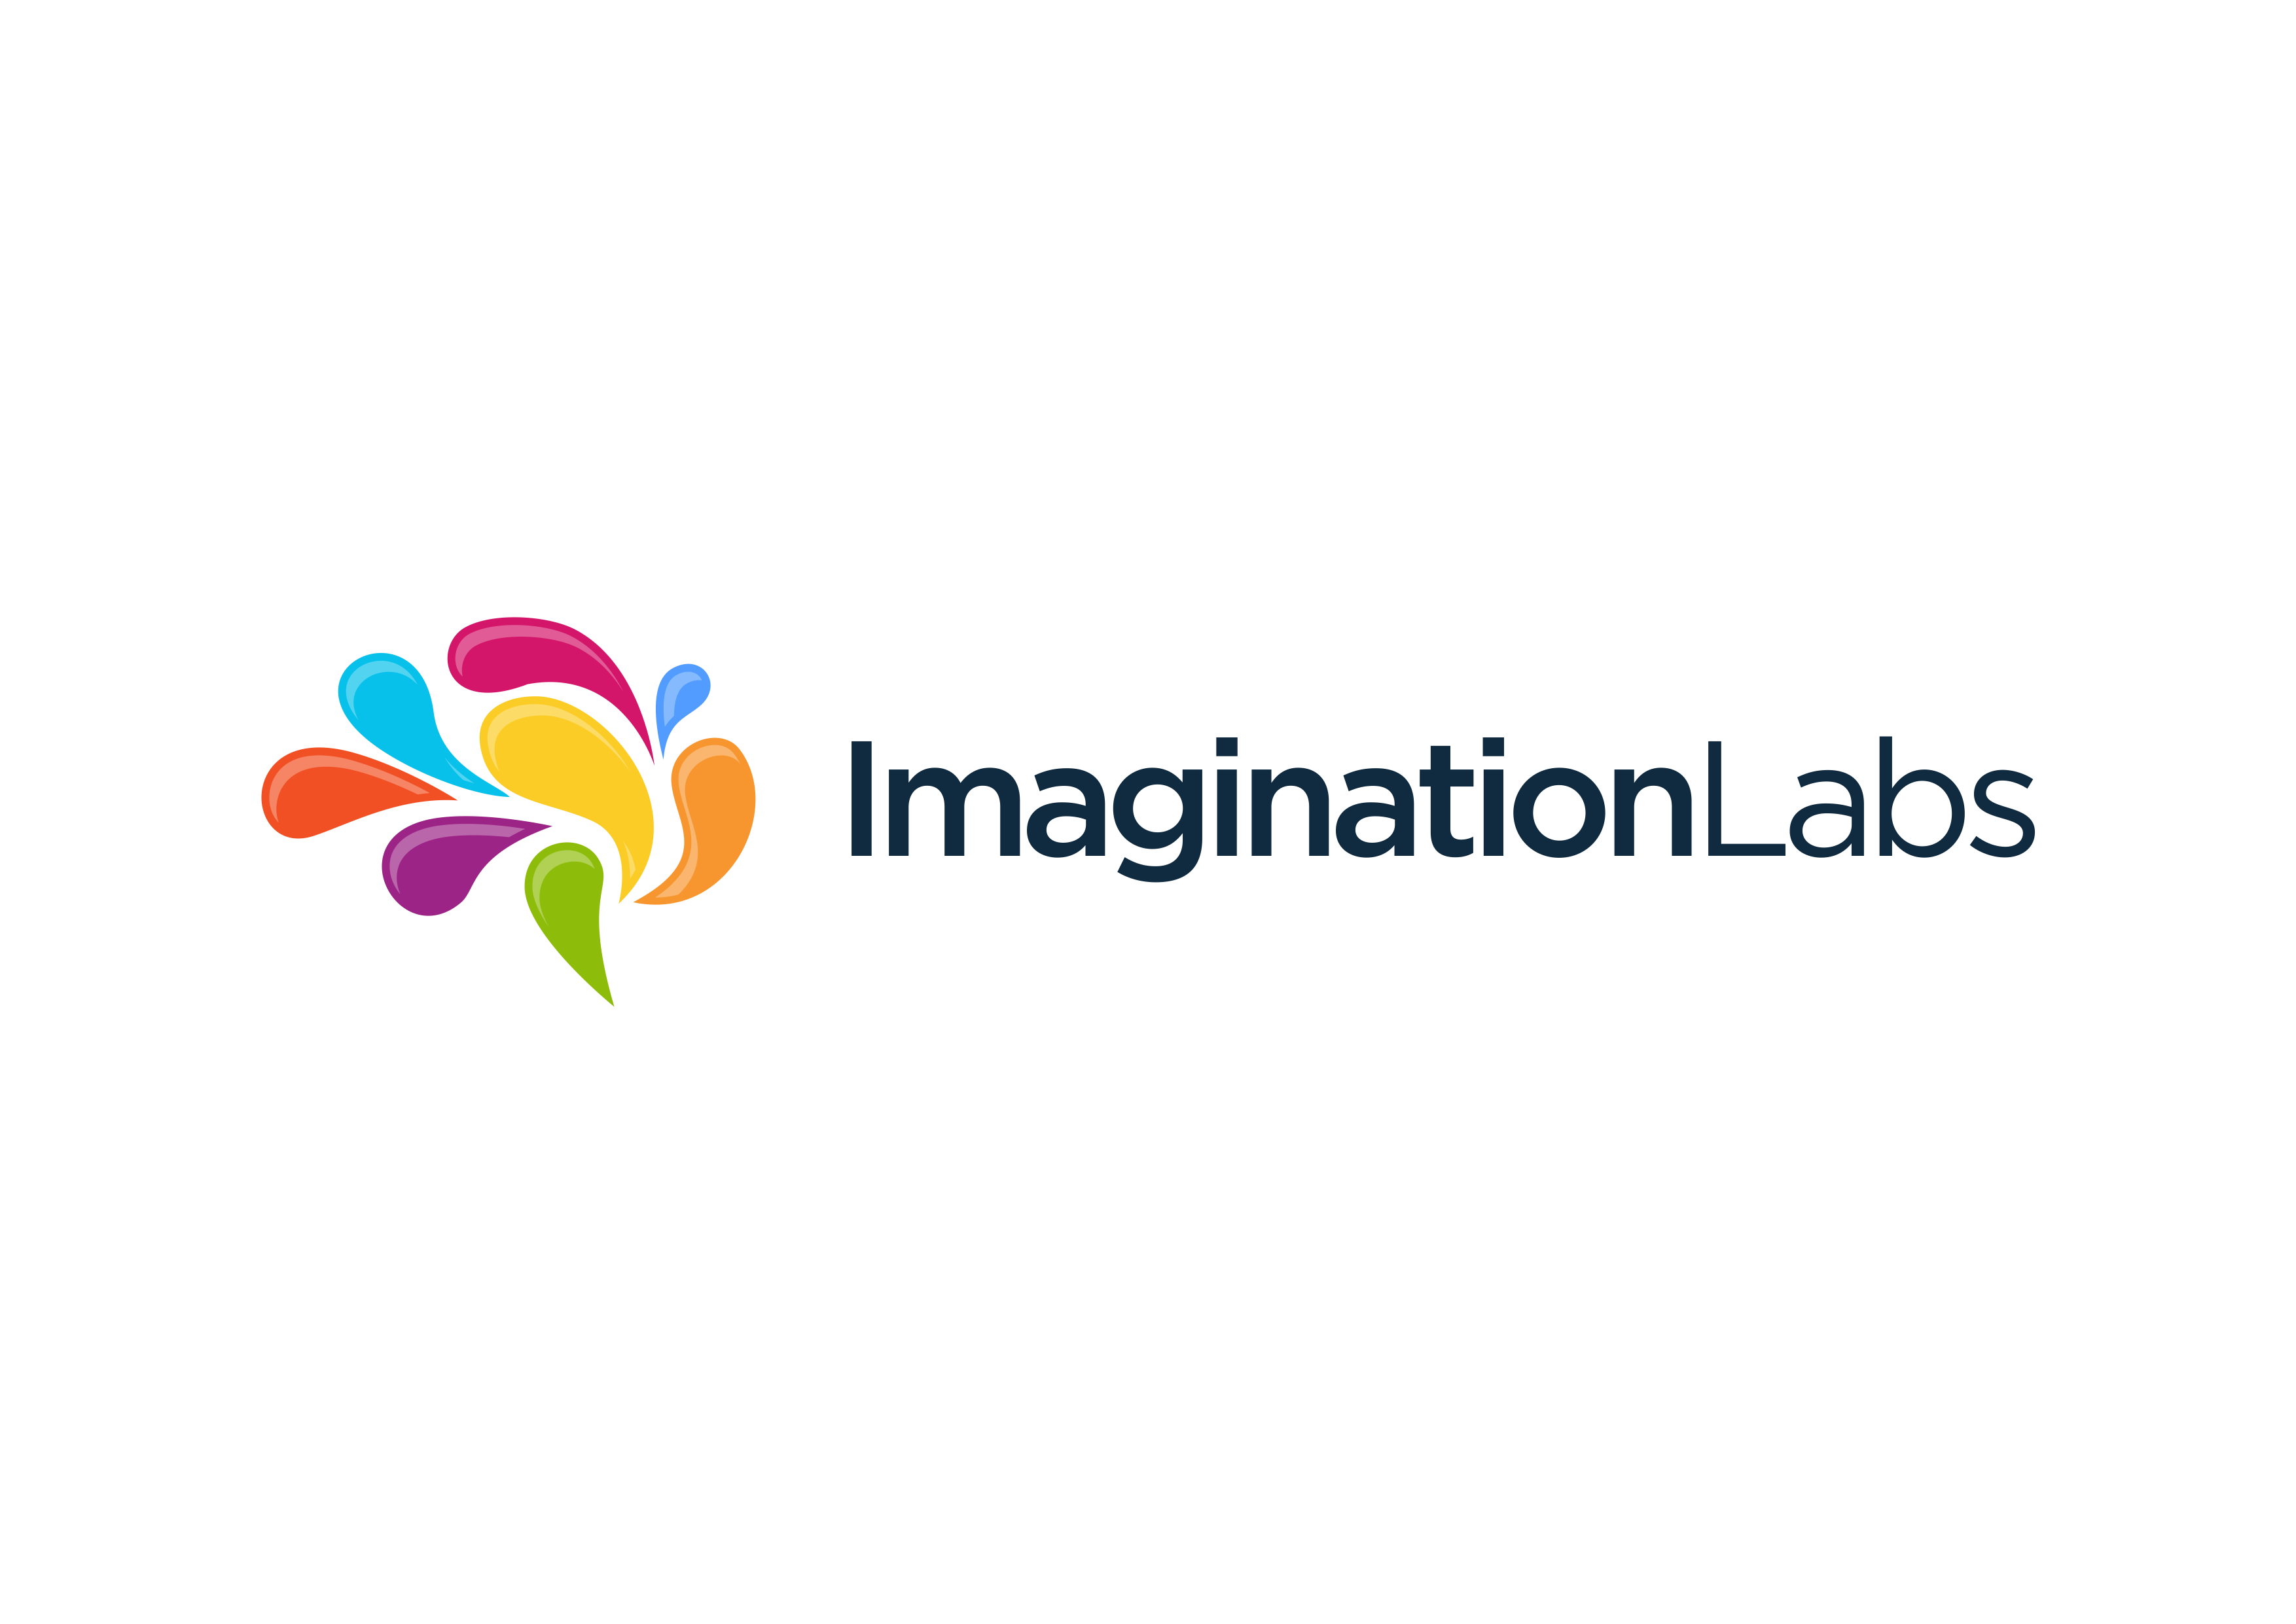 Use your imagination to design our logo - nothing is too crazy